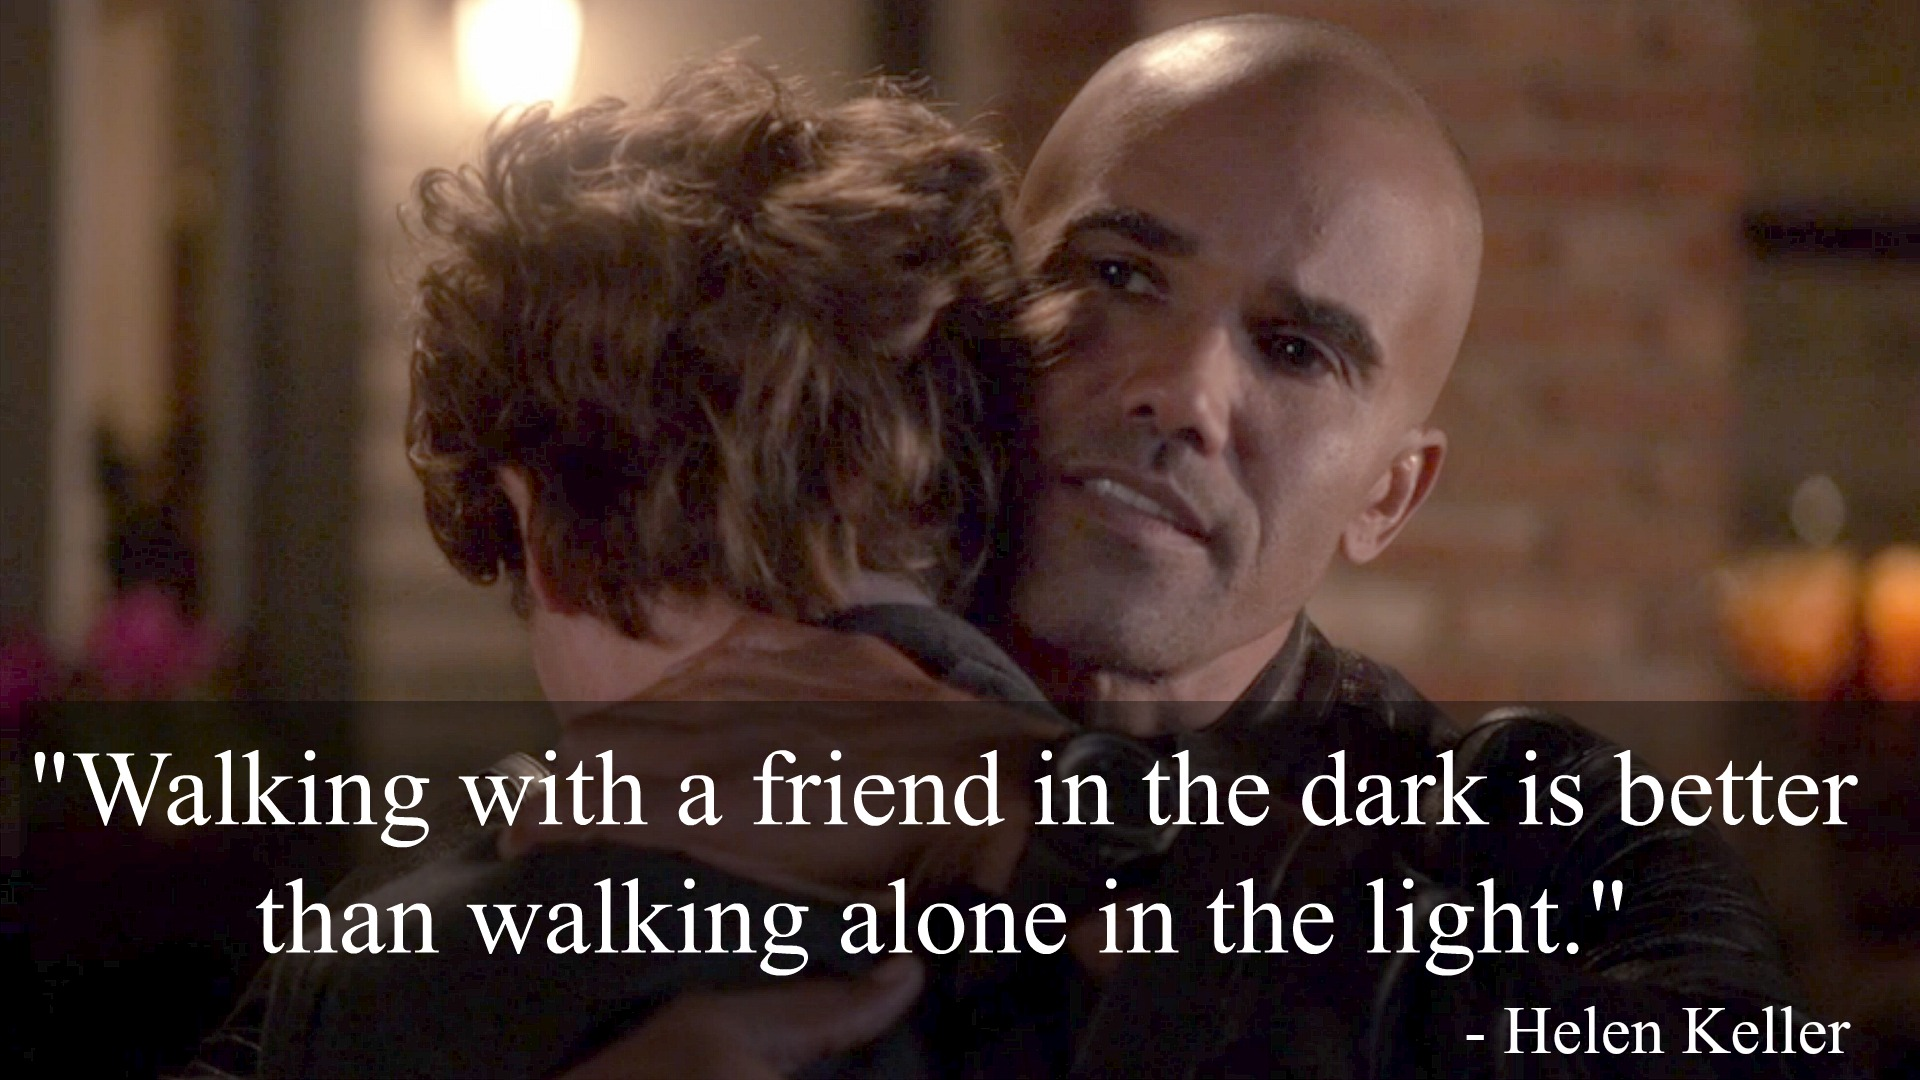 Criminal Minds: 17 Profound Quotes From Season 11 - Criminal ...